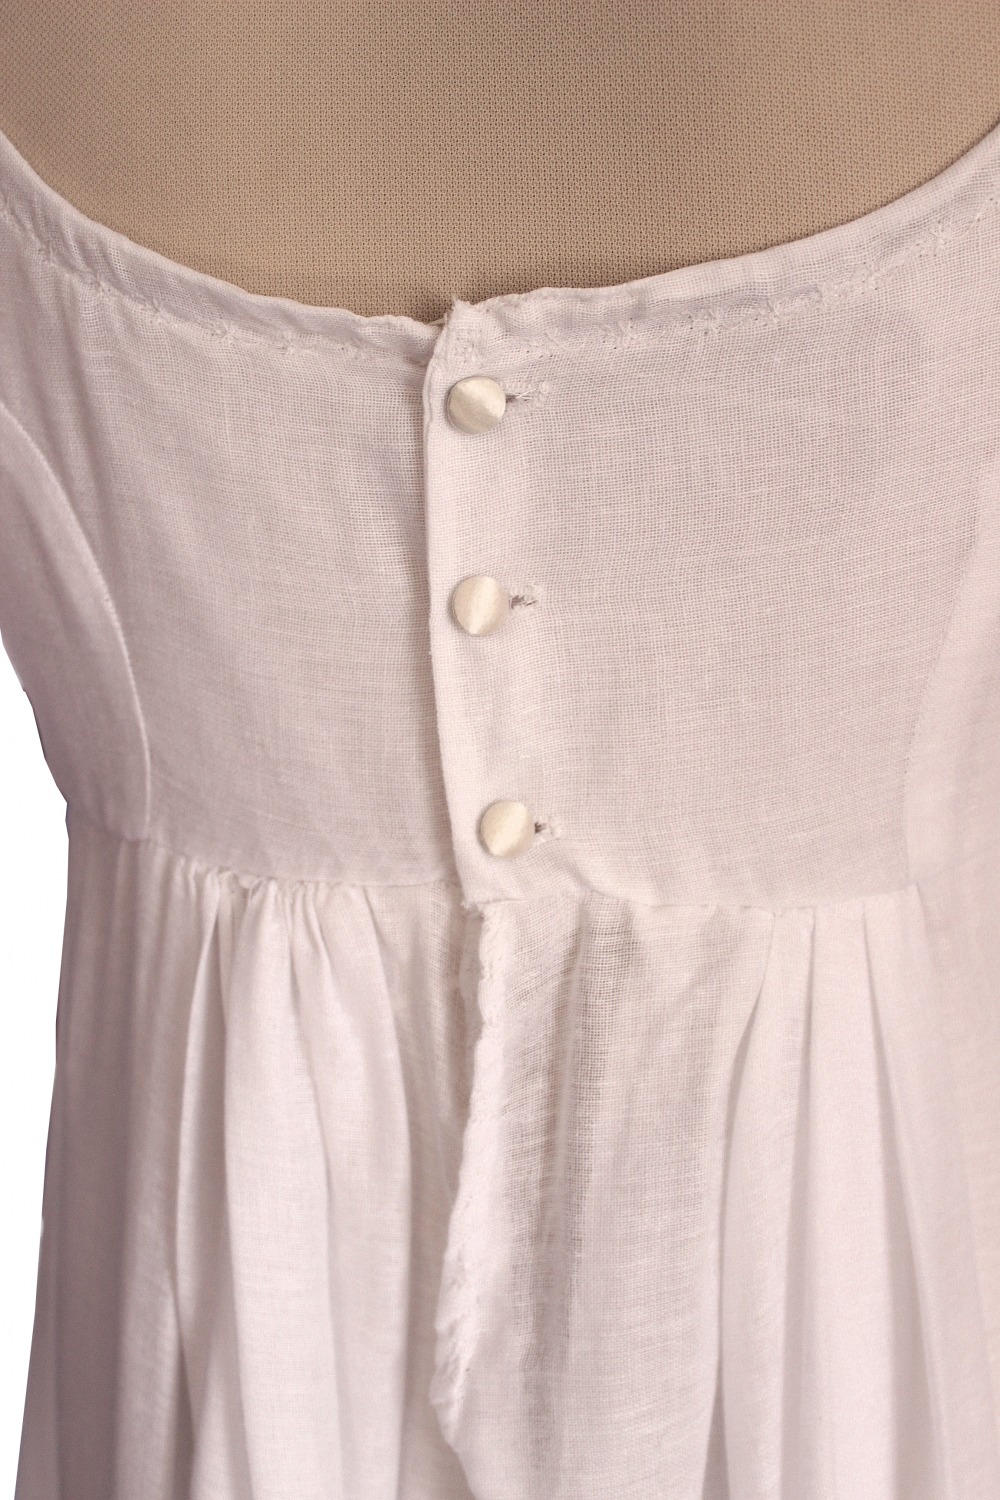 For Sale Ladies 19th Century Jane Austen Elizabeth Bennet Regency Day Gown Dress Costume Size 12 - 14 Long Sleeves Image